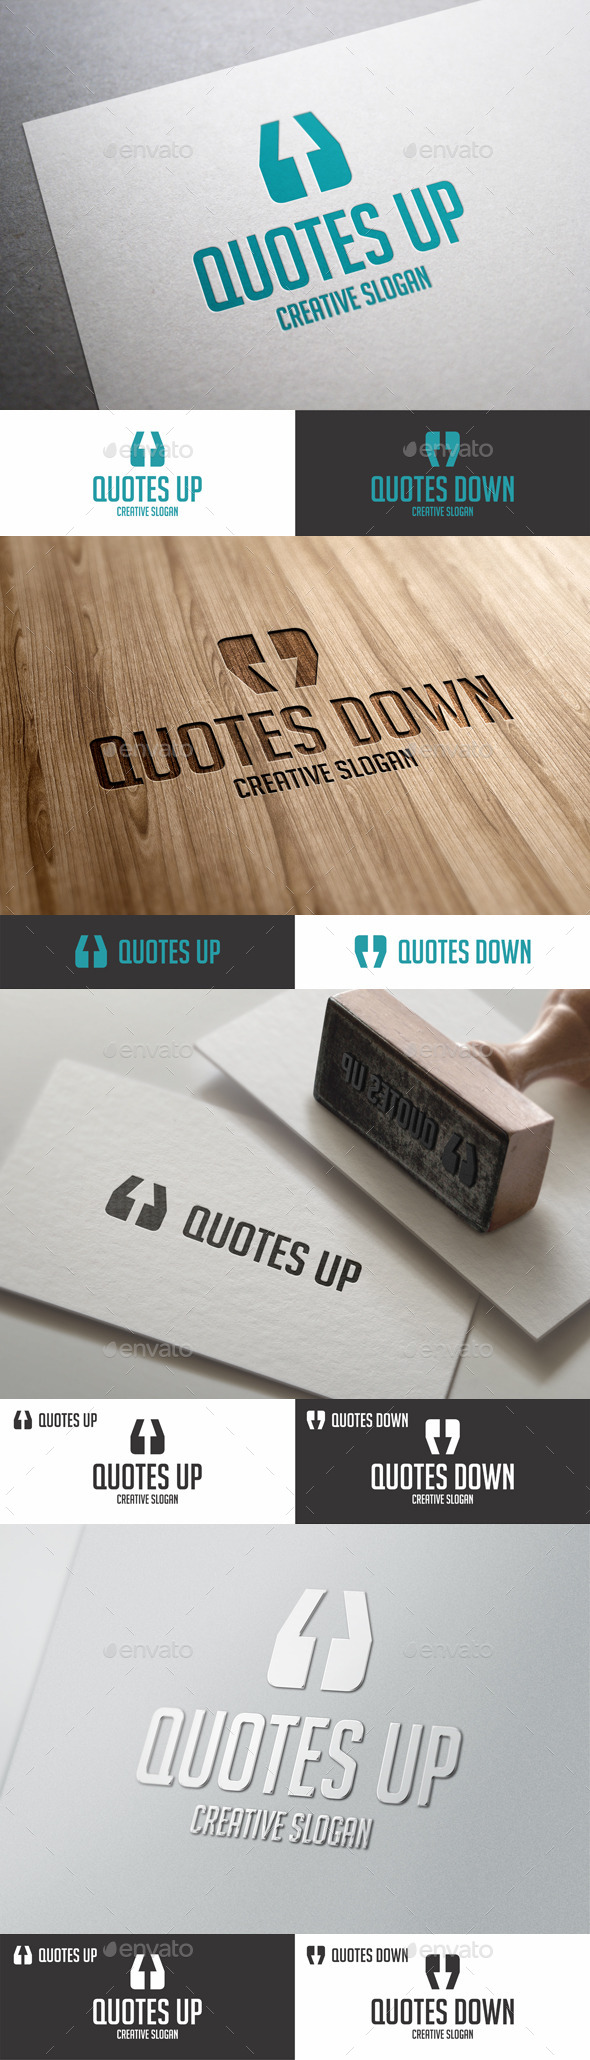 GraphicRiver Quotes Up Down Arrow Logo 9032070